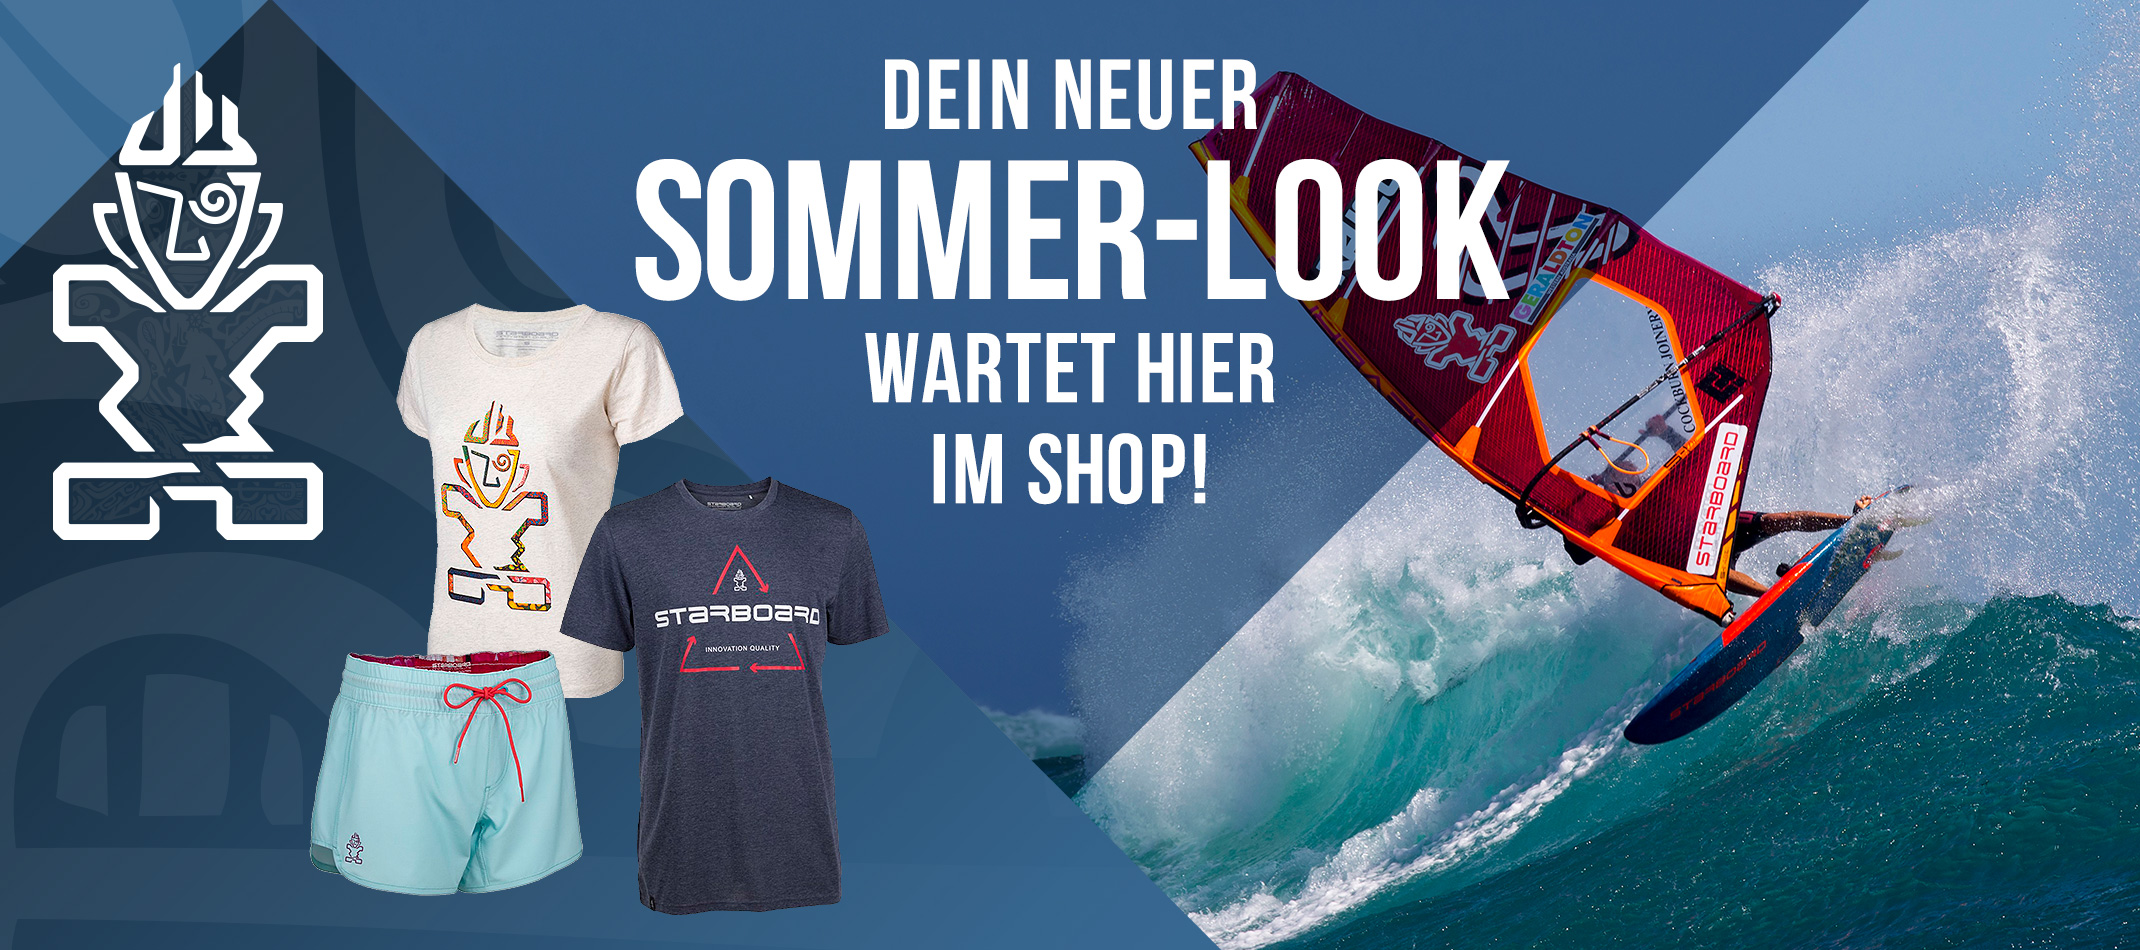 Starboard Clothing Germany – Starboard Apparel